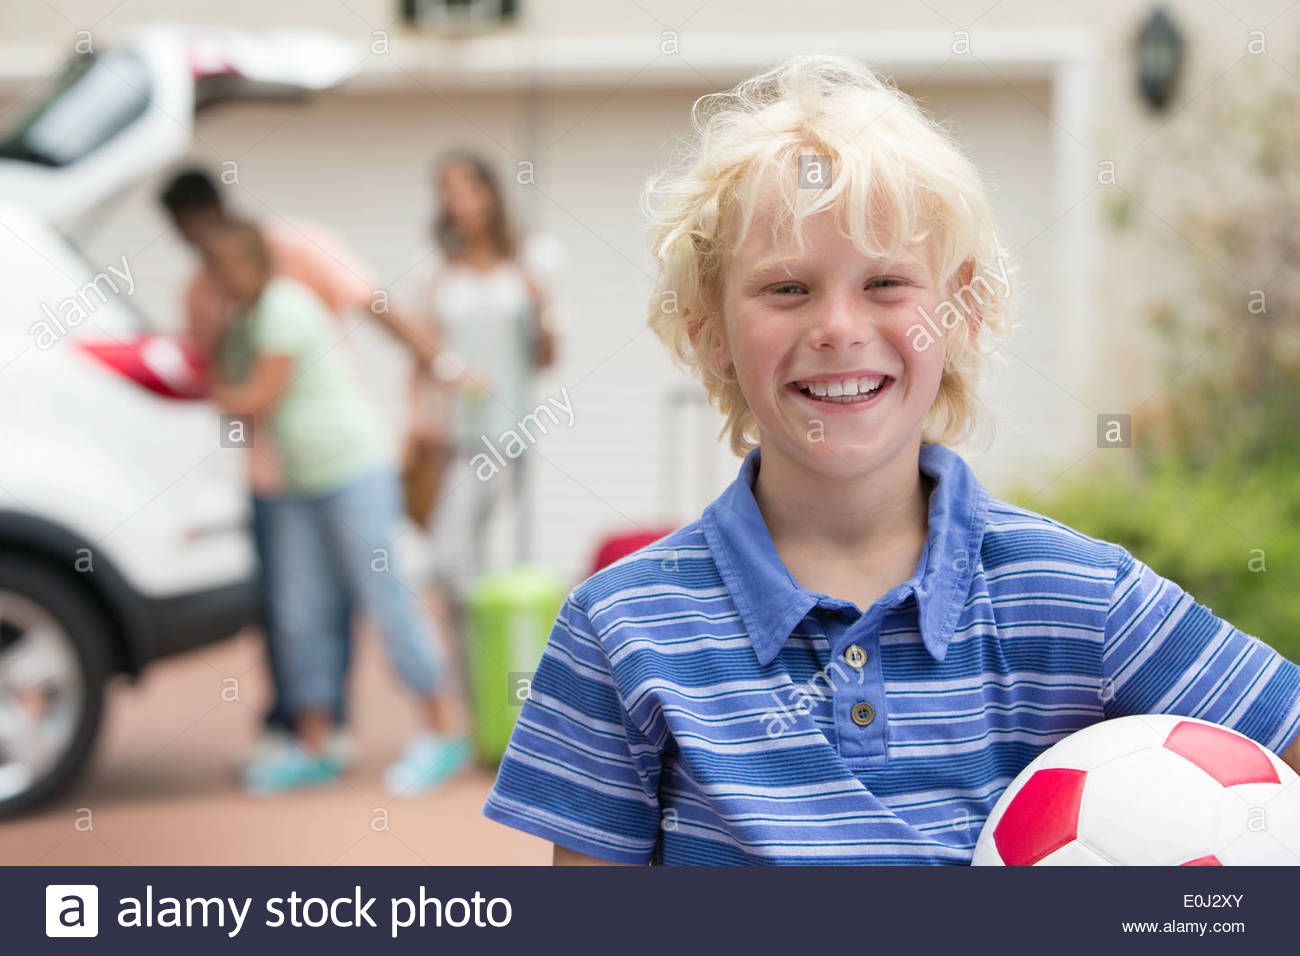 Portrait of smiling boy holding soccer ball in driveway - Stock Image